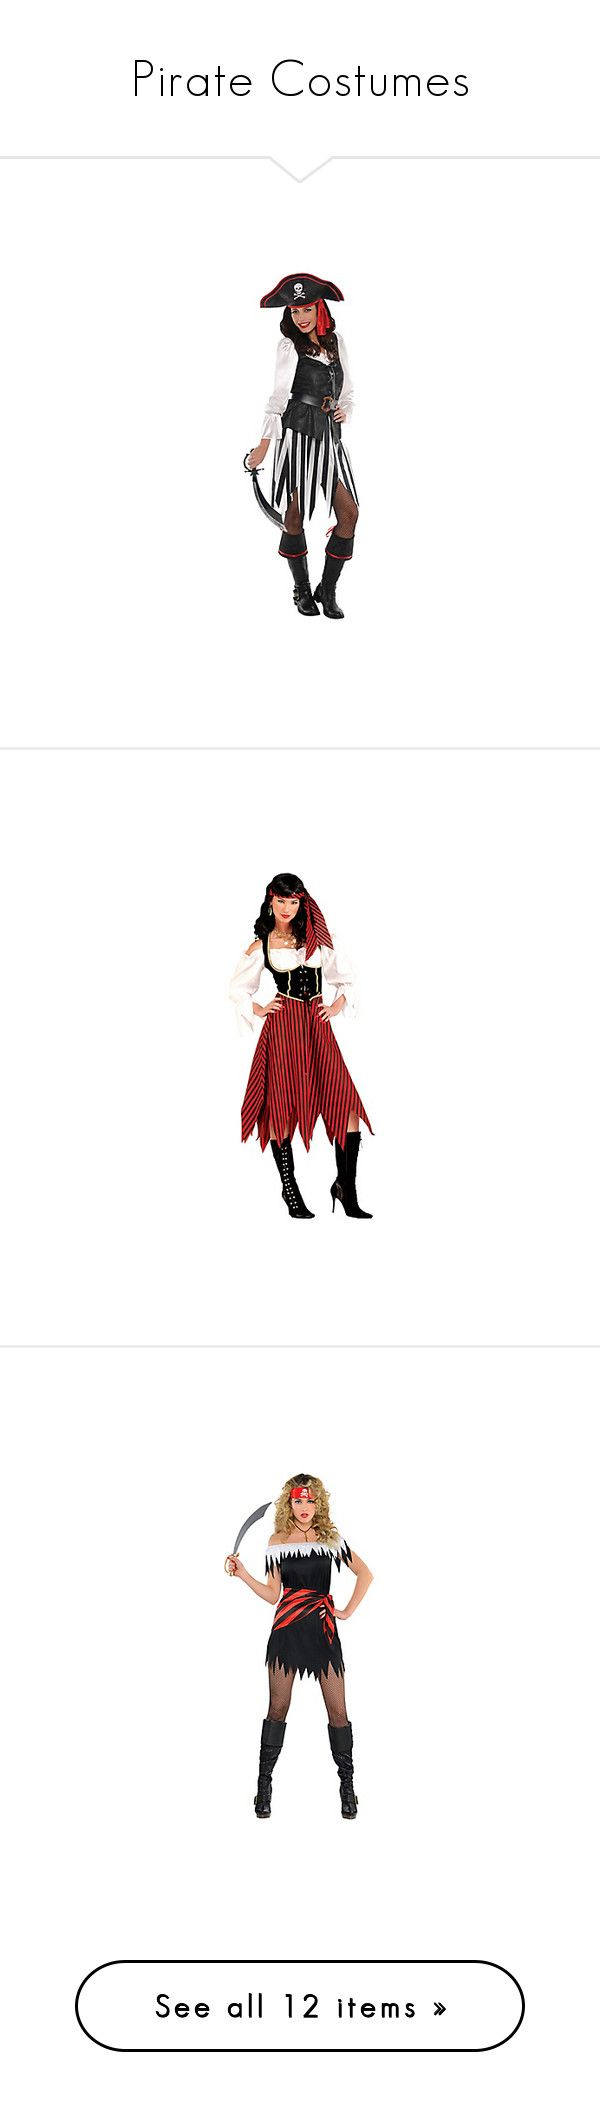 """""""Pirate Costumes"""" by itsablingthing ❤ liked on Polyvore featuring costumes, sexy pirate halloween costume, adult costumes, pirate halloween costumes, sexy halloween costumes, pirate costume, women's halloween costumes, womens pirate halloween costume, ladies costumes and party halloween costumes"""